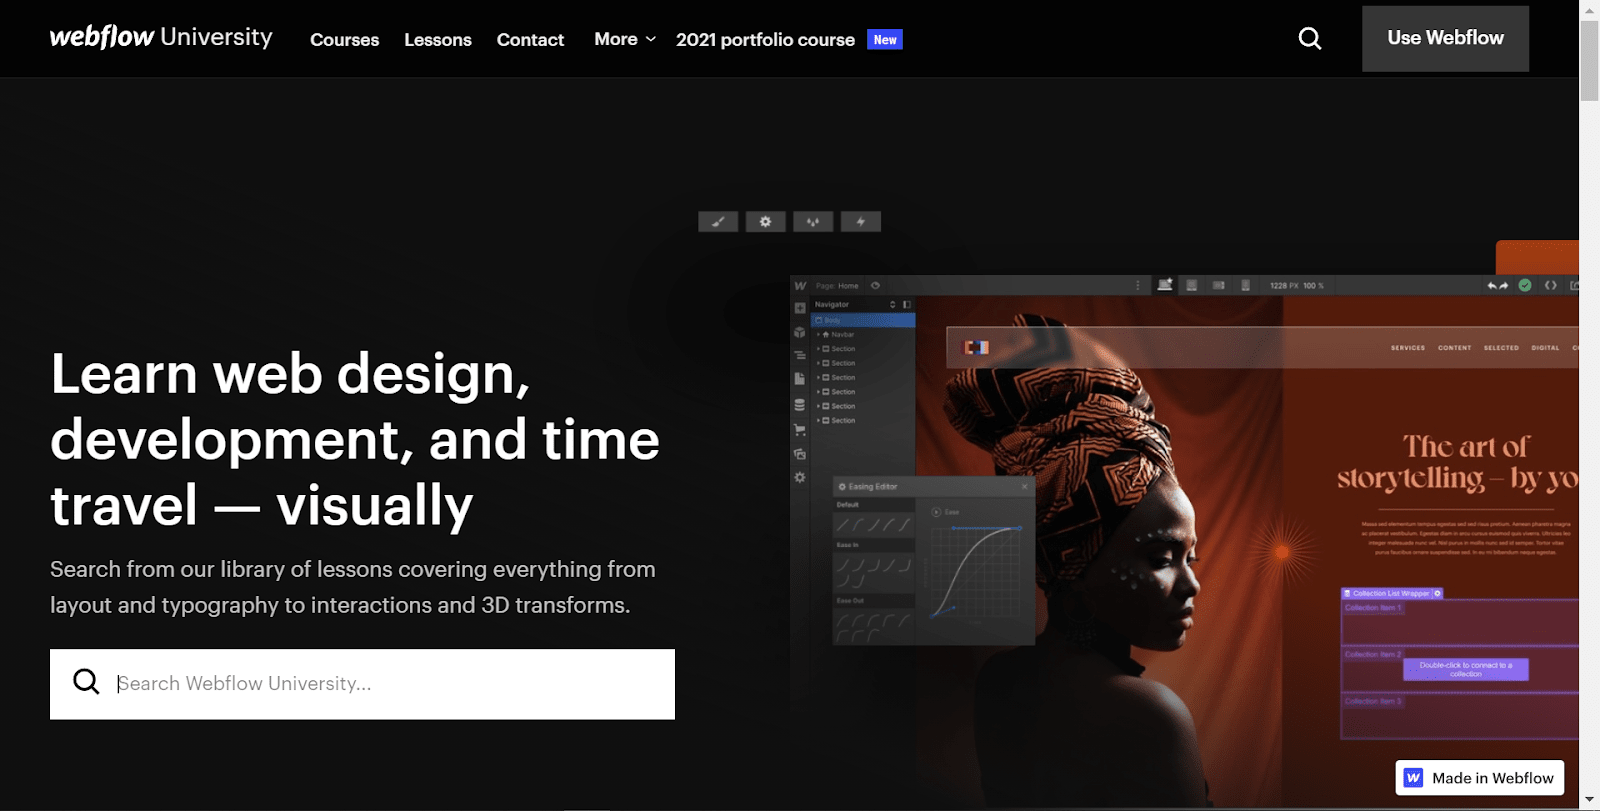 Webflow or Squarespace - Who offers more support?